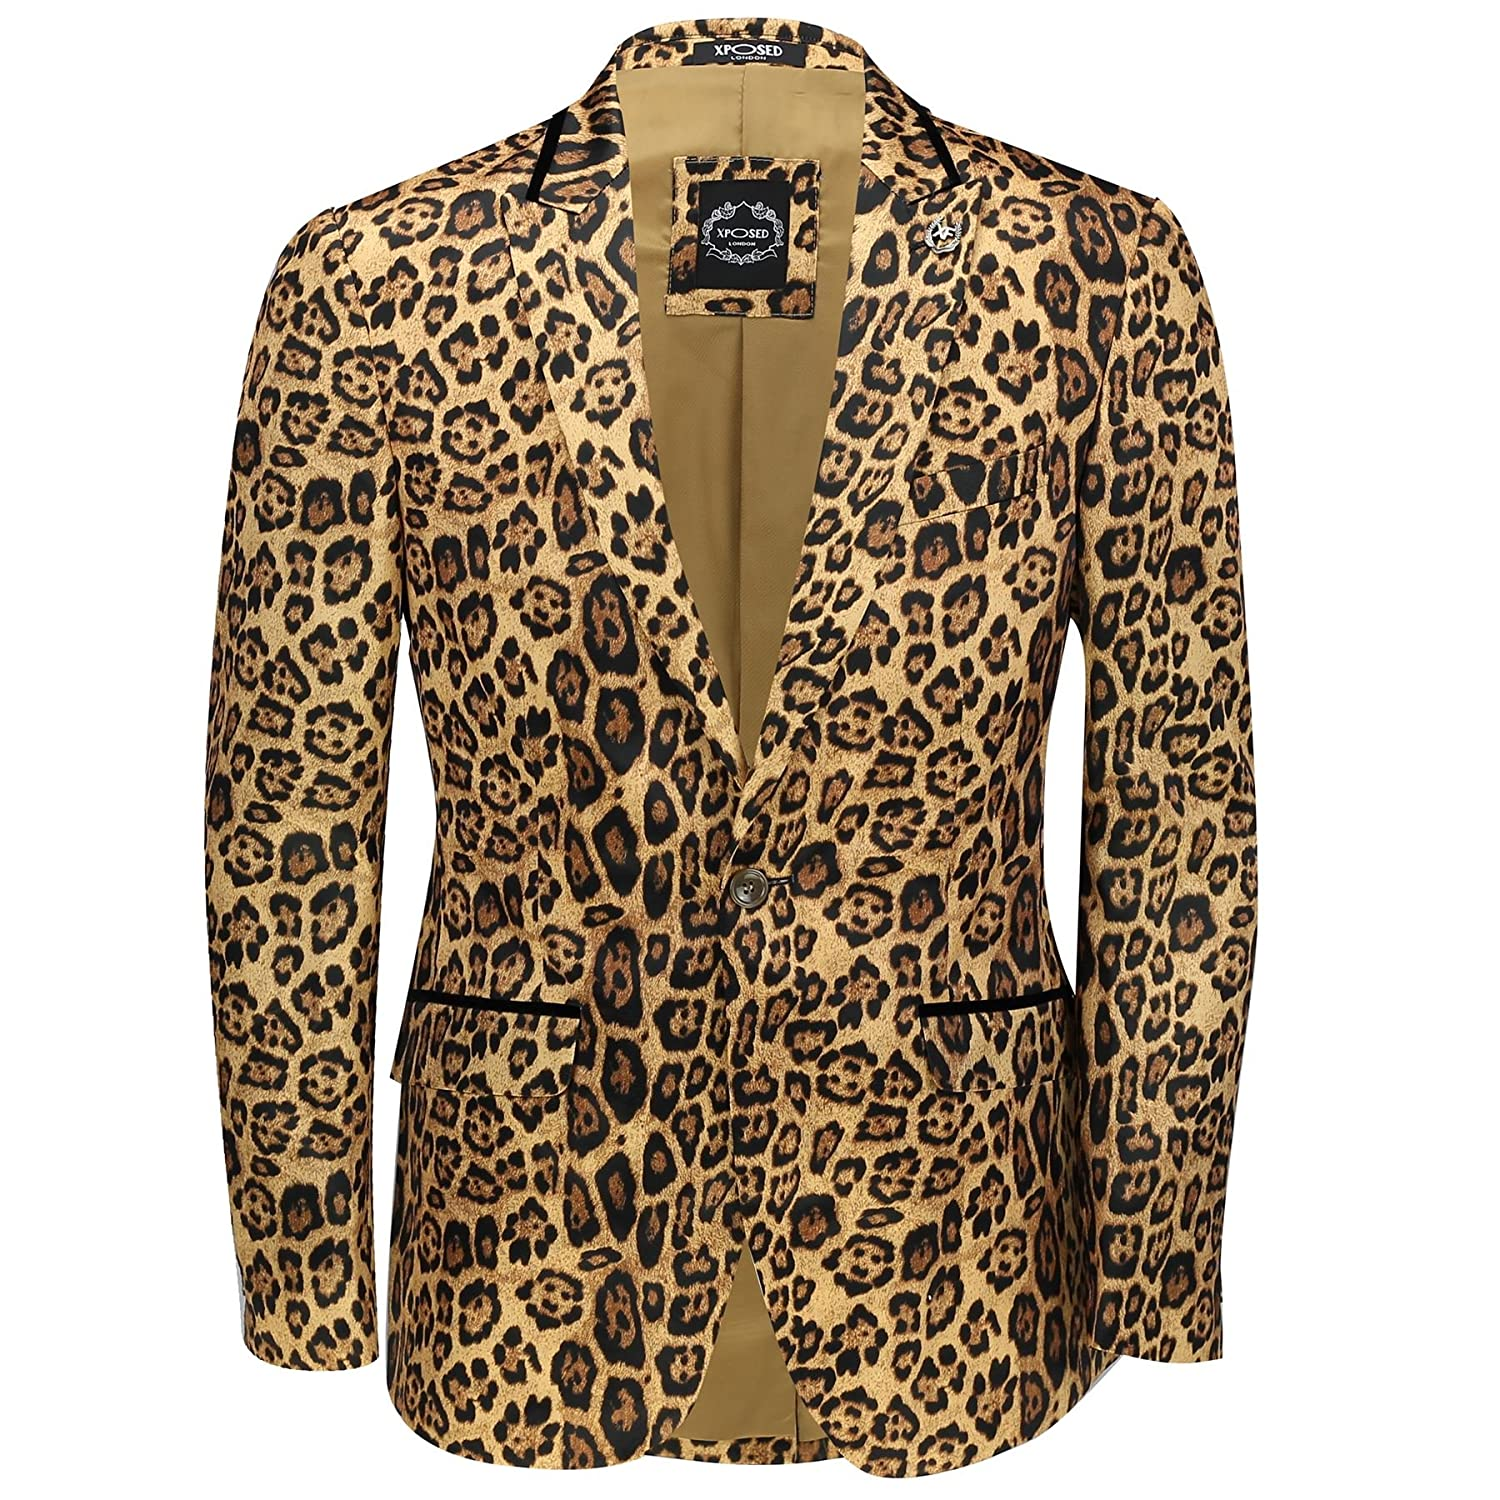 Mens Leopard Rosette Deep Gold Printed Italian Designer Suit Jacket Fitted Blazer XPOSED